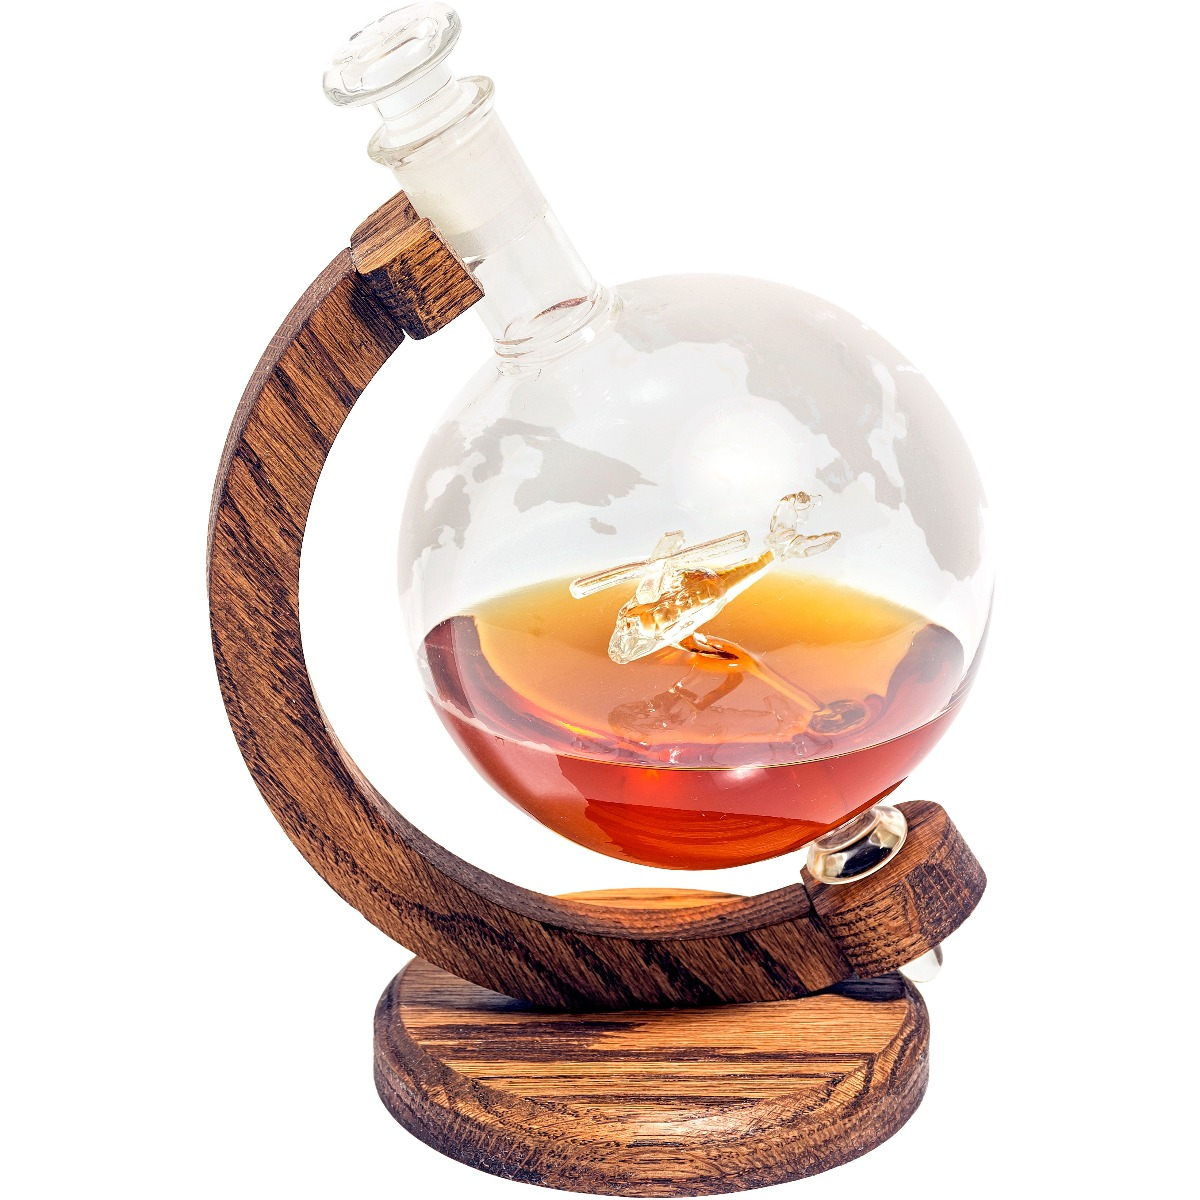 Helicopter decanter, a gift for helicopter lovers